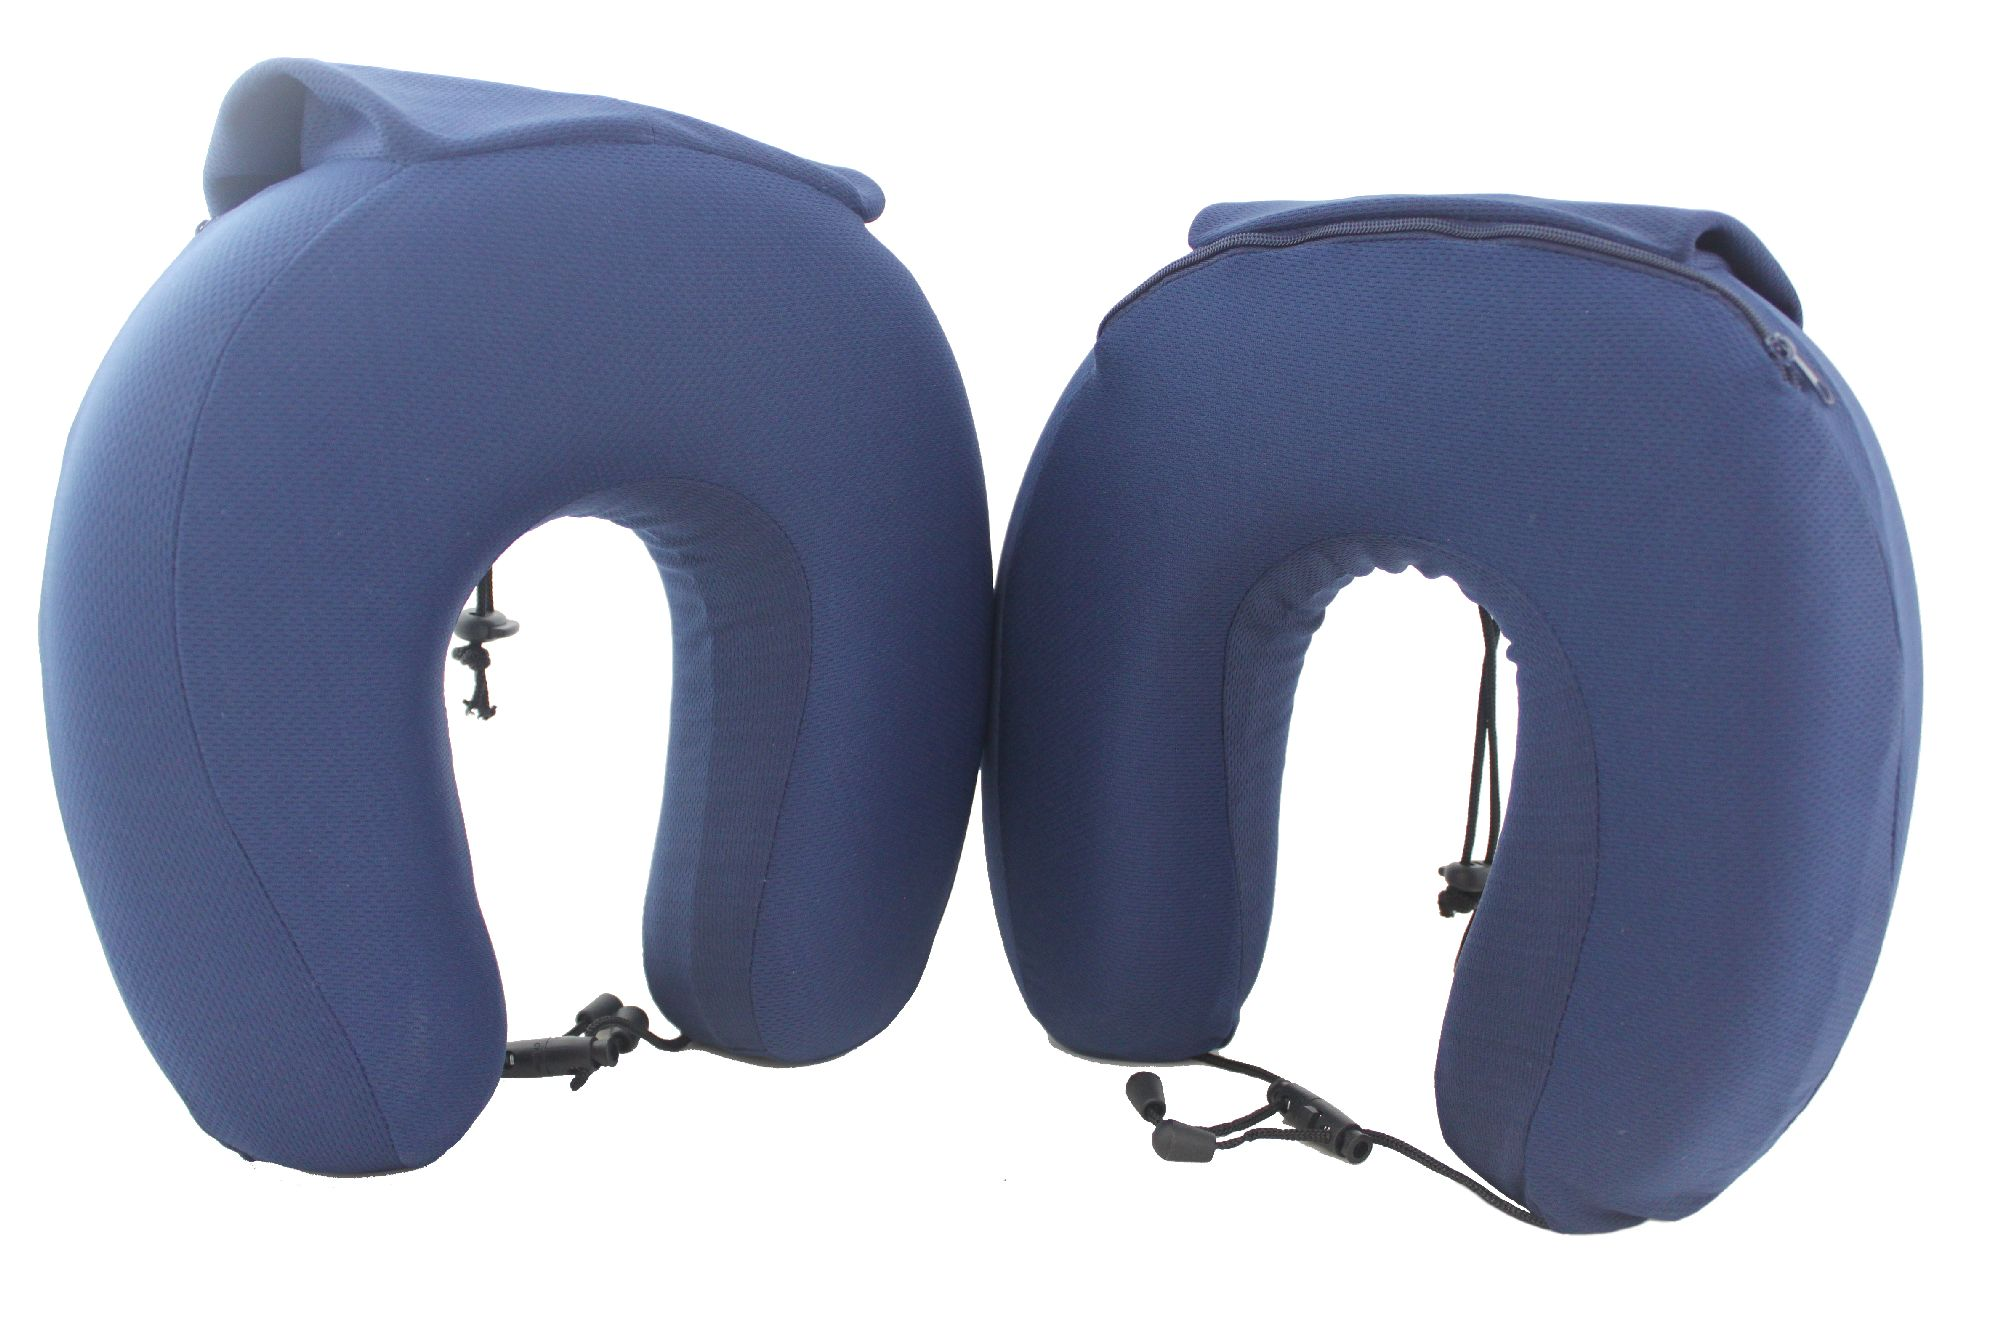 Bolan Pack of 2 Memory Foam Super Comfortable Travel Pillows, Compact, Foldable, Fits Into its Own Attached Small Bag for Planes, Trains and Automobiles.